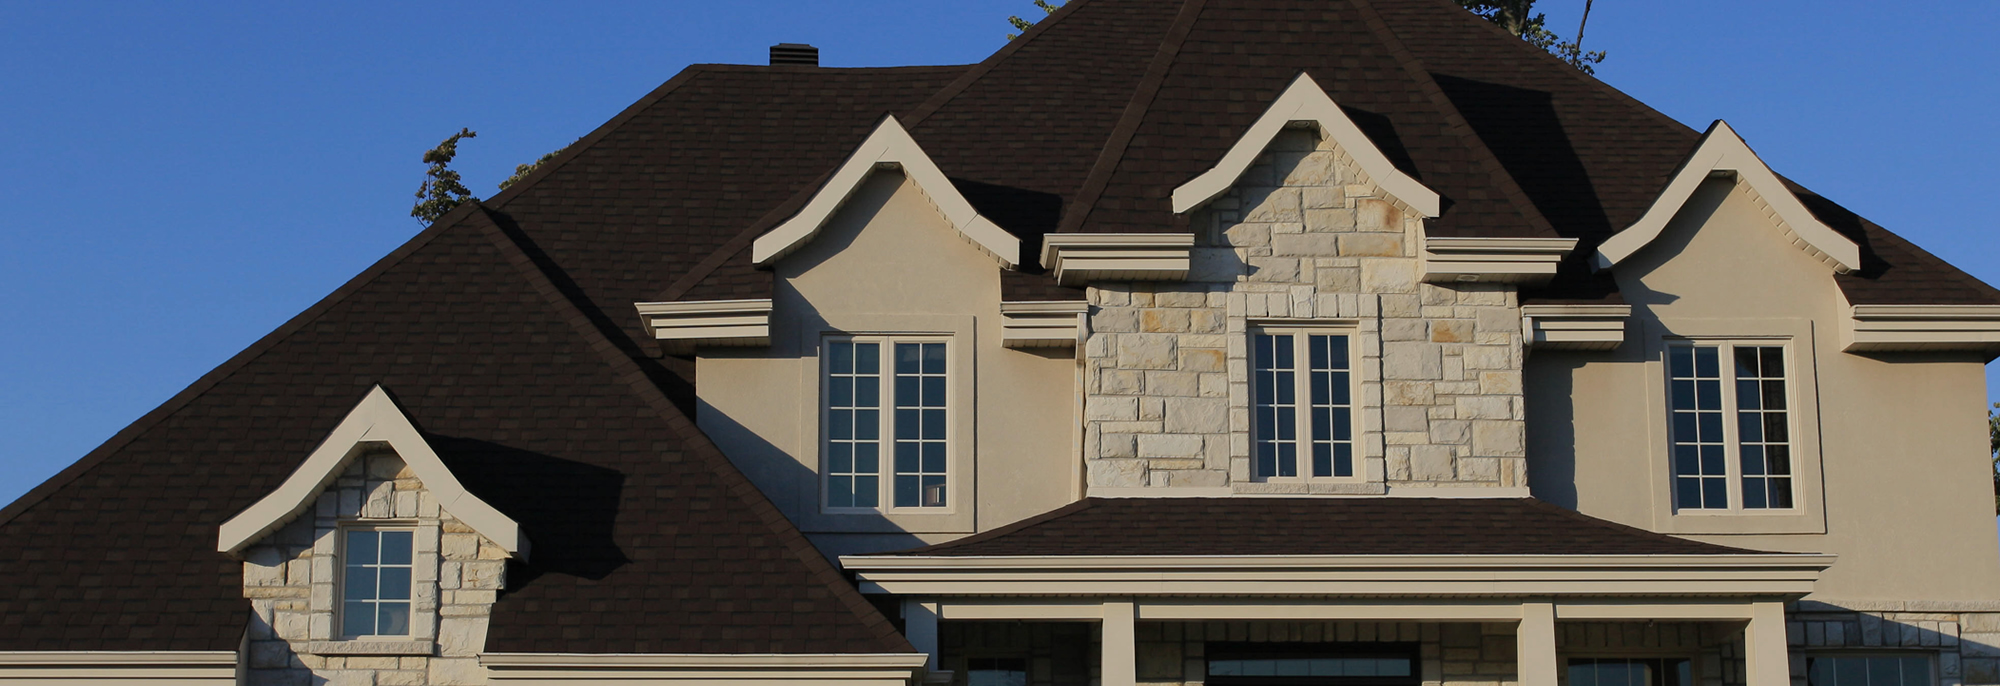 Charming Quality Roofing At An Affordable Price